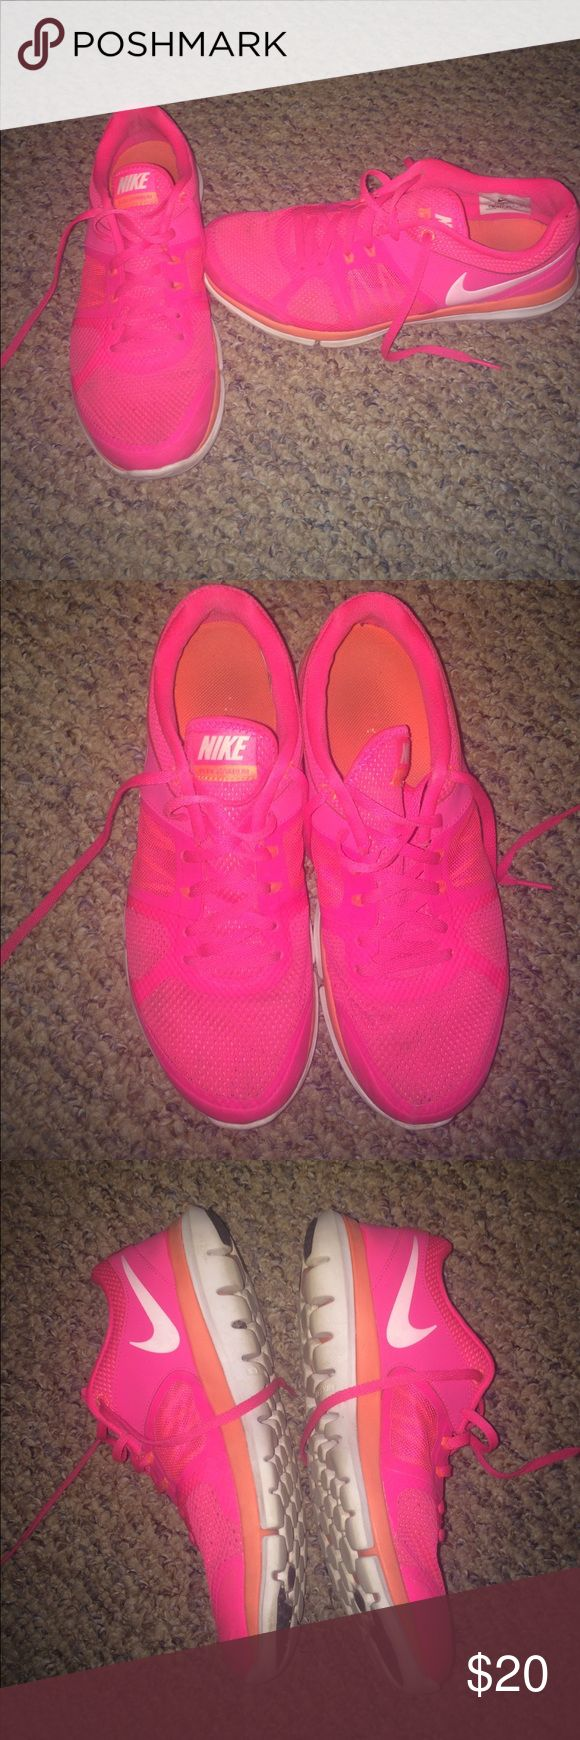 Nike flex hot pink sneakers Lots of life left , clean, Nike flex Nike Shoes Athletic Shoes